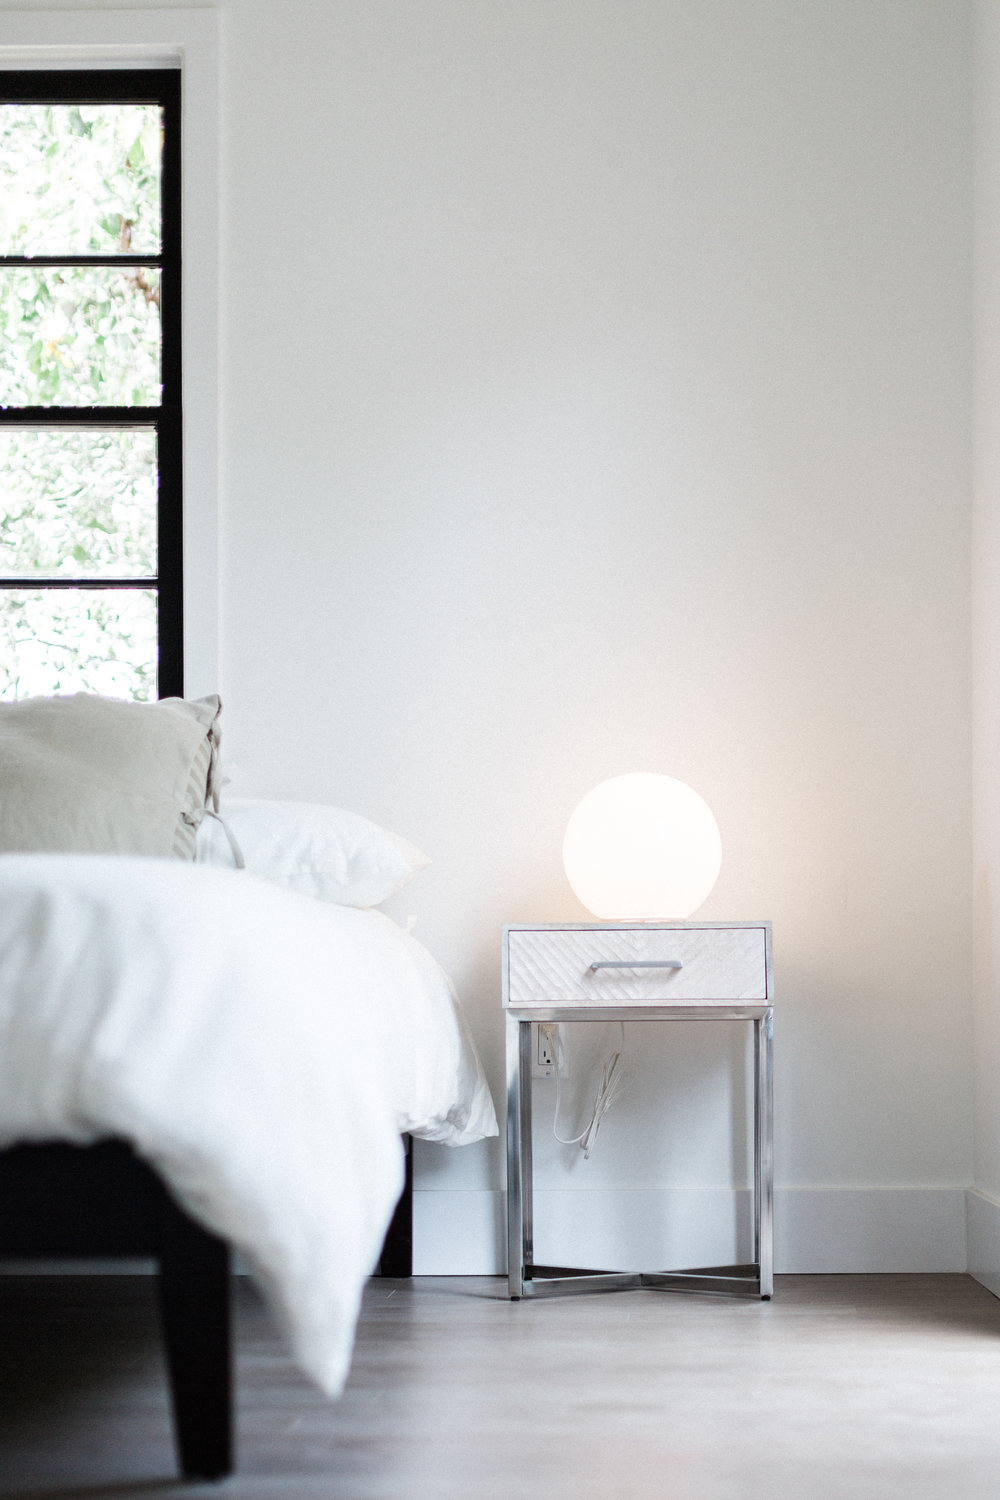 IKEA's simple globe lamps create a soft and glowy light. Almost childlike in its appeal, and something you never outgrow.